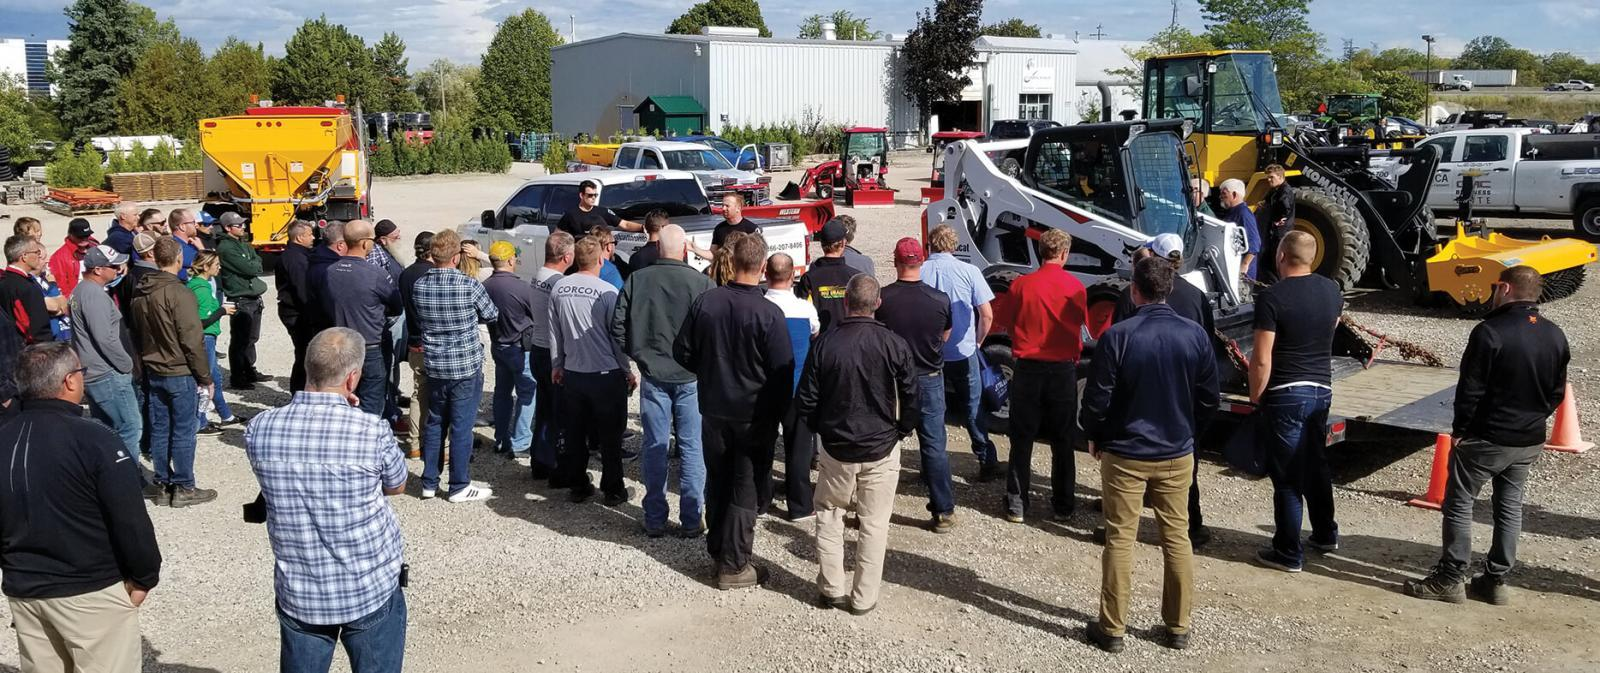 The commercial vehicle safety demonstration was led by Halton Police Services.